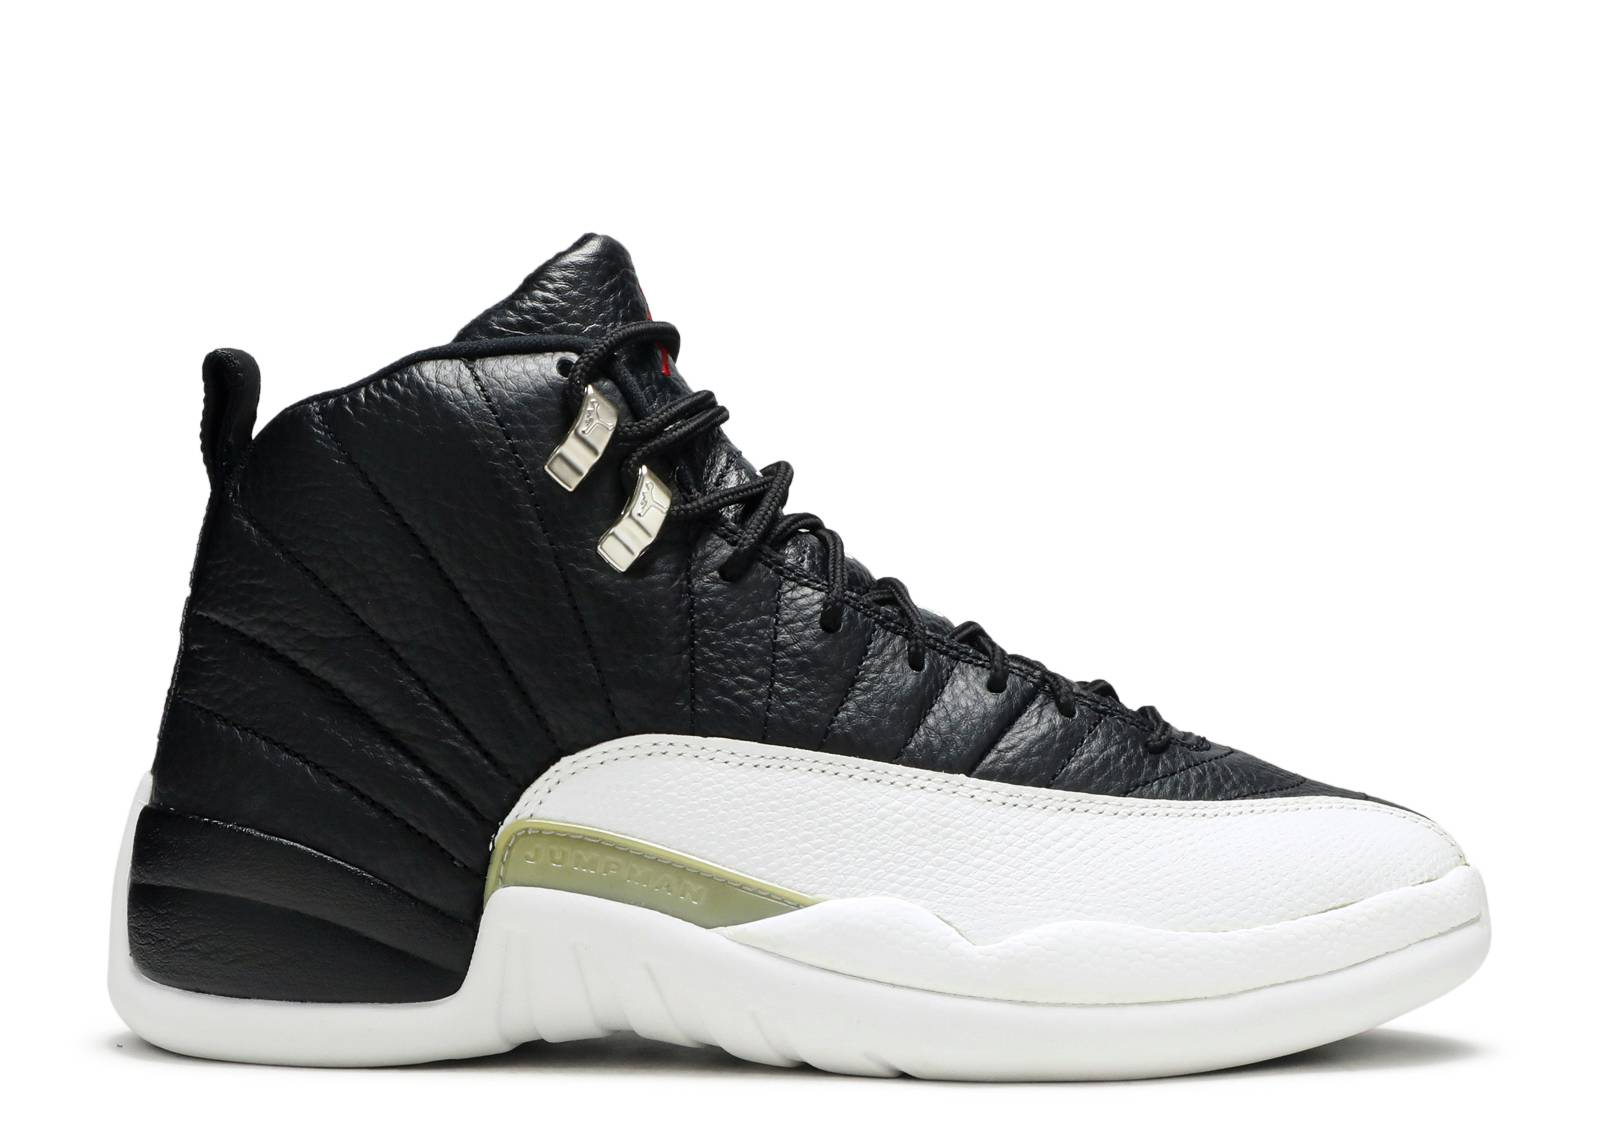 air jordan 12 retro playoff black&white background